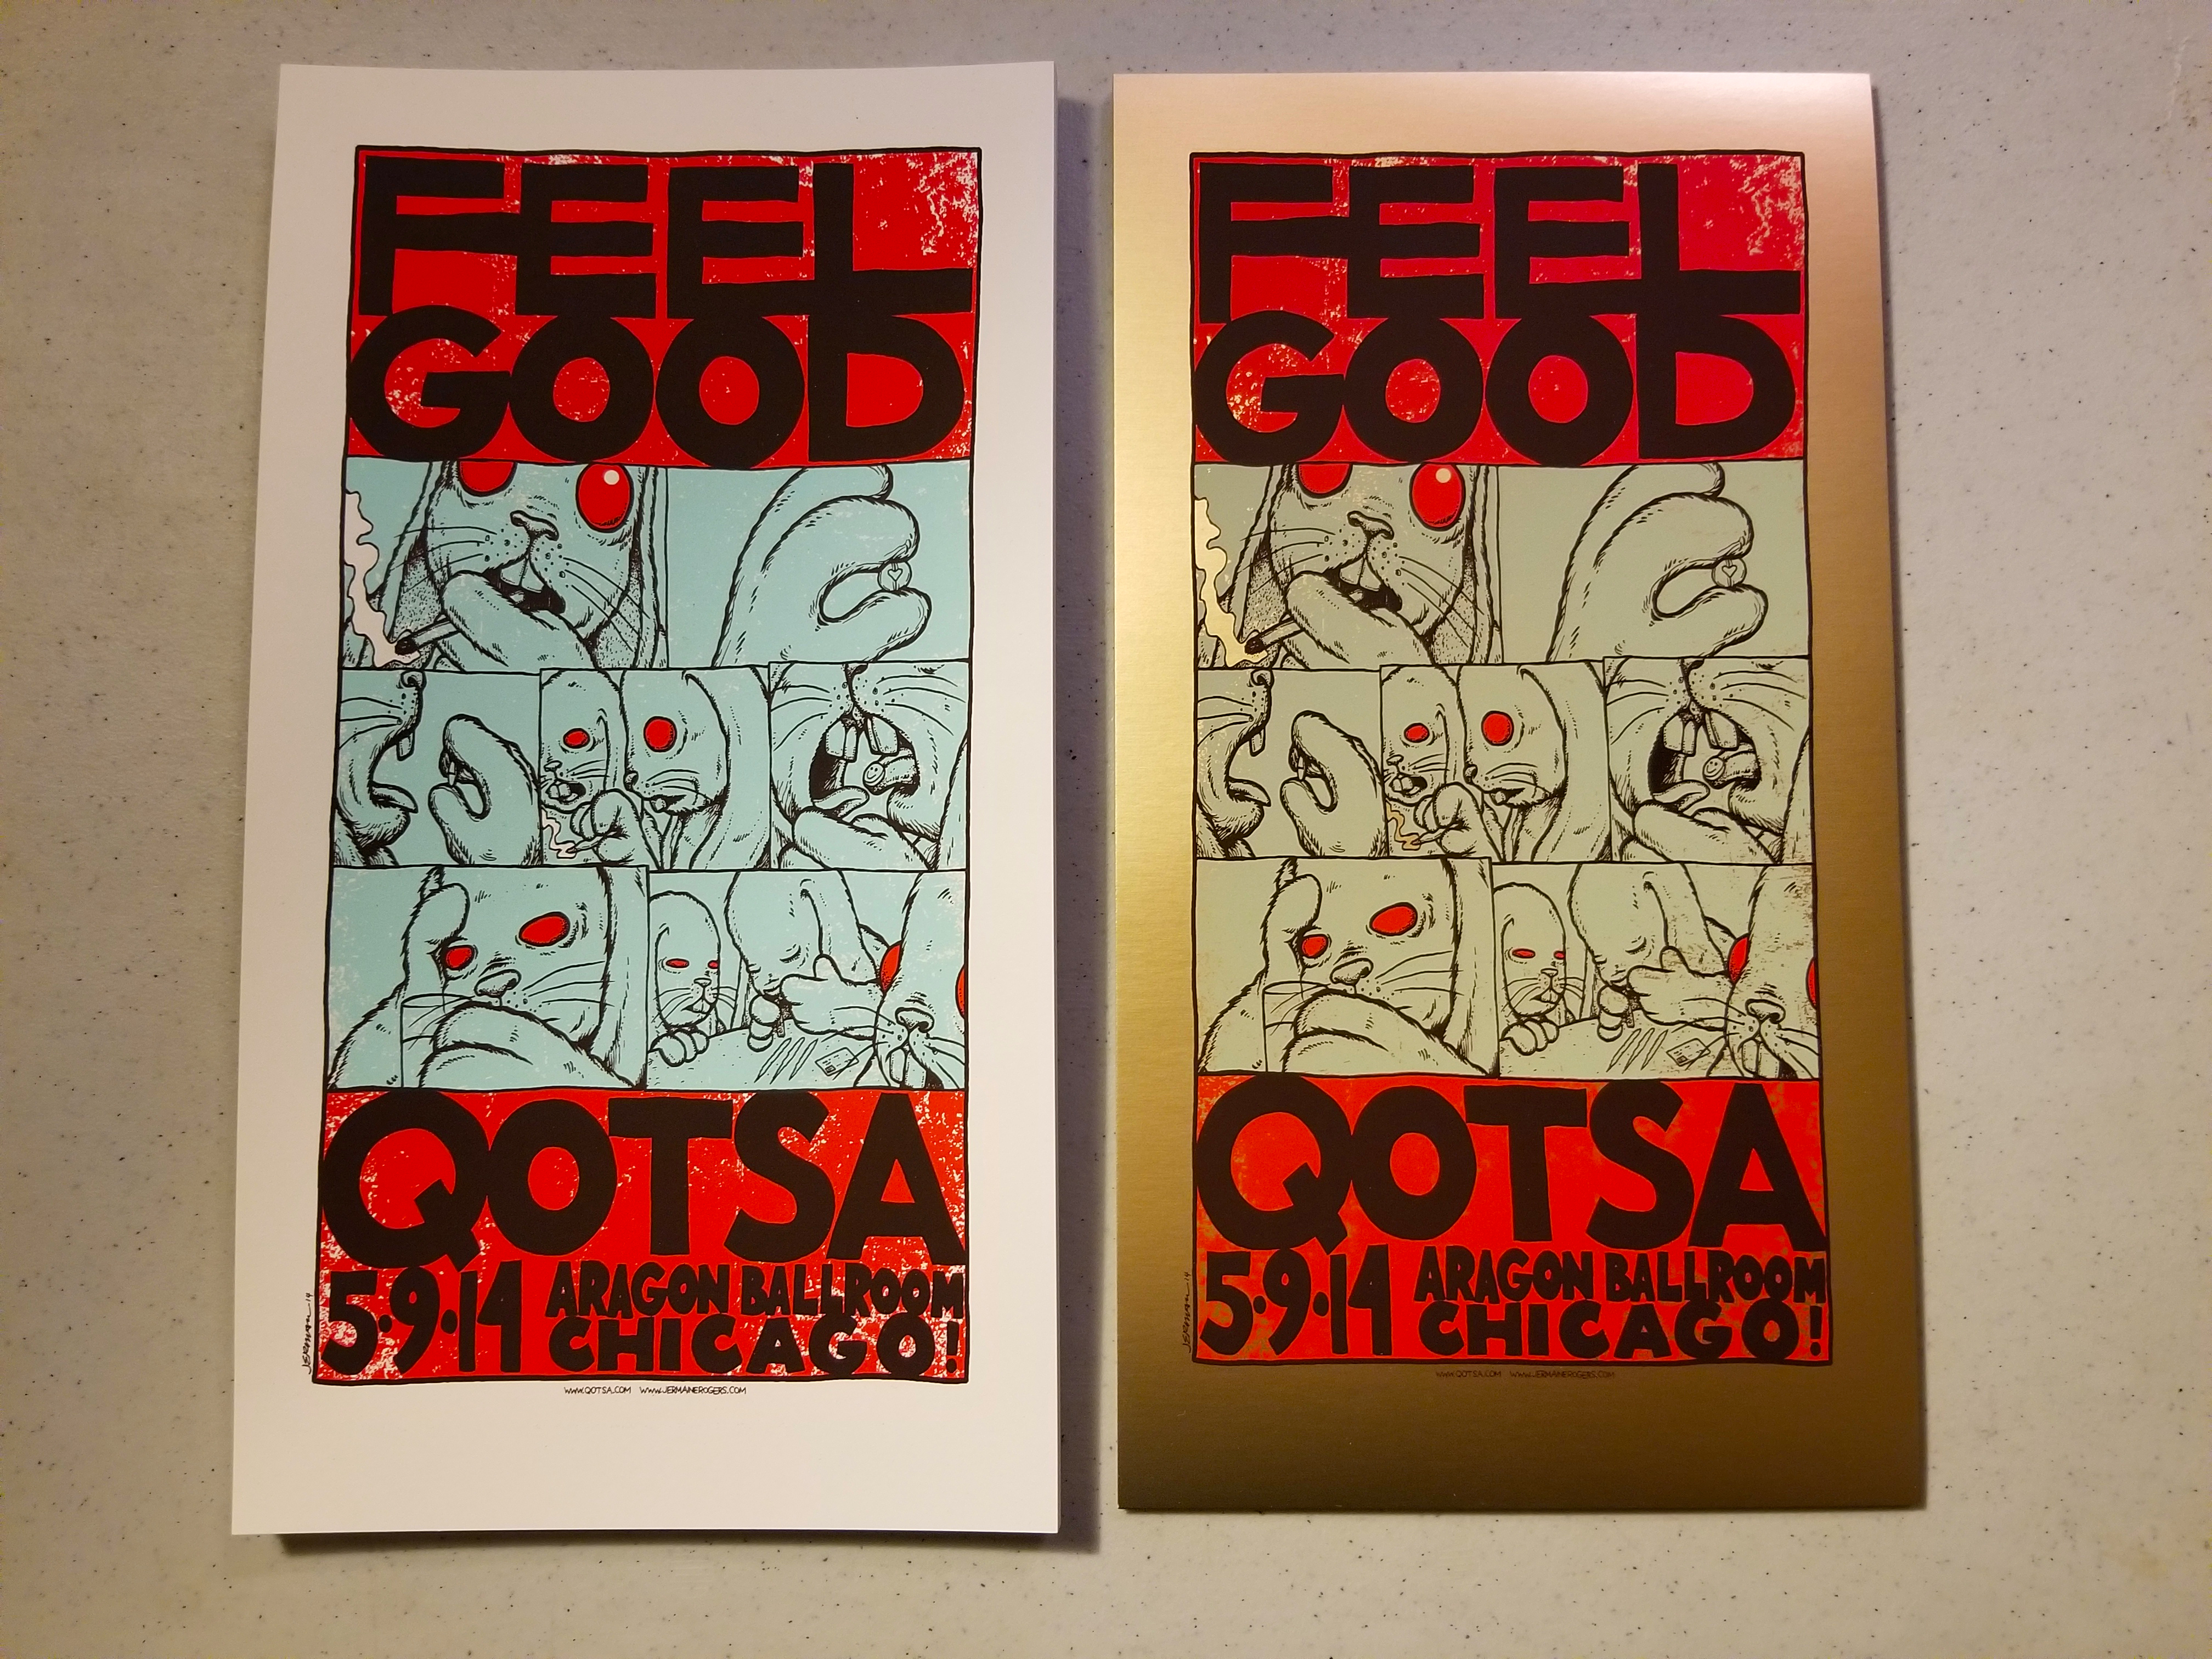 - Queens Of The Stone Age 'FEEL GOOD' (Chicago 2014) Mini Print (White and Gold Foil Variants) -